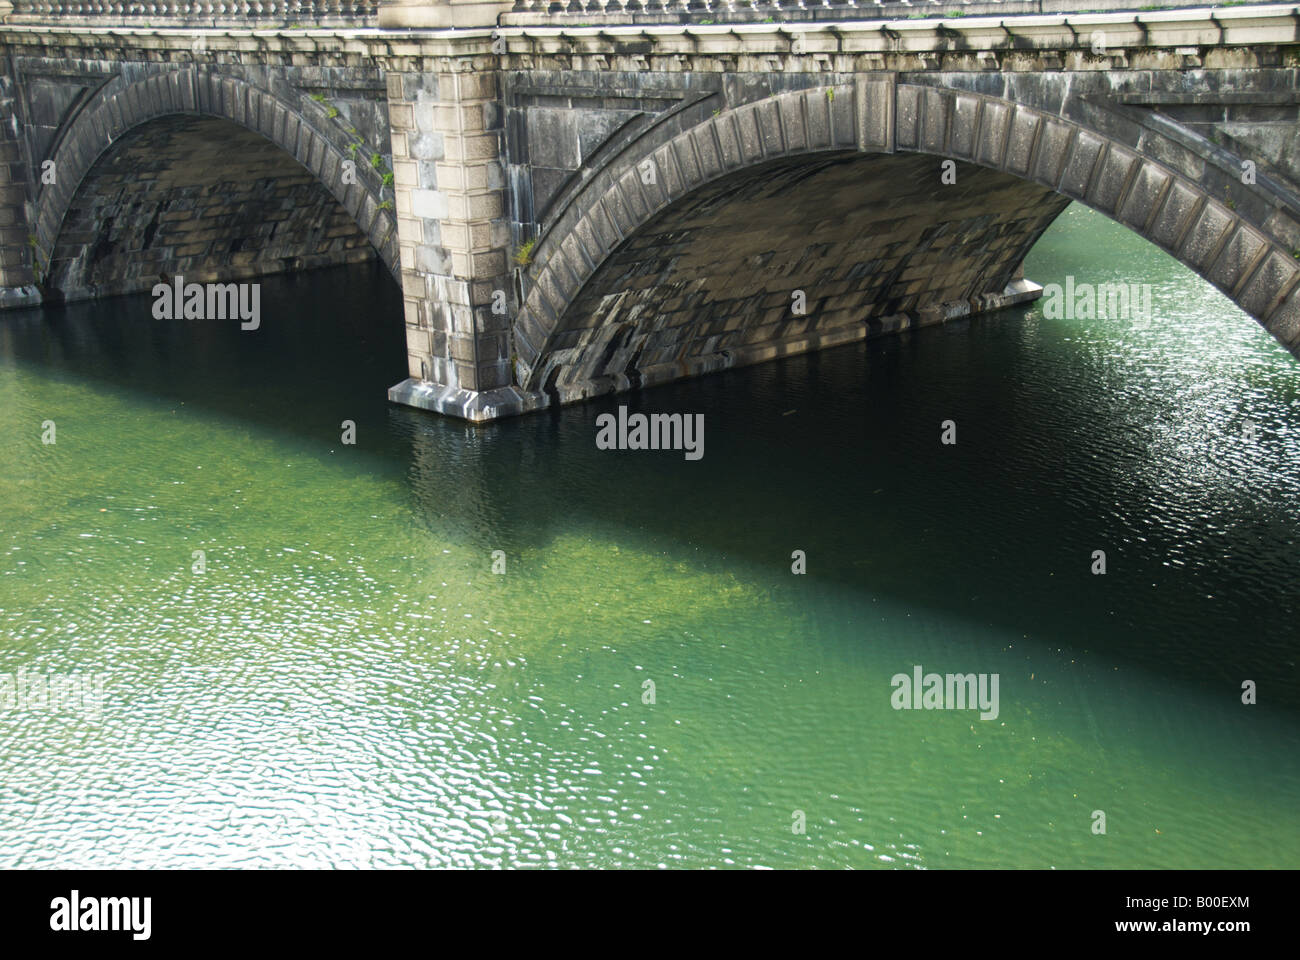 The Nijubashi Bridge also known as the Meganebashi Bridge, Tokyo Imperial Palace, Japan. - Stock Image